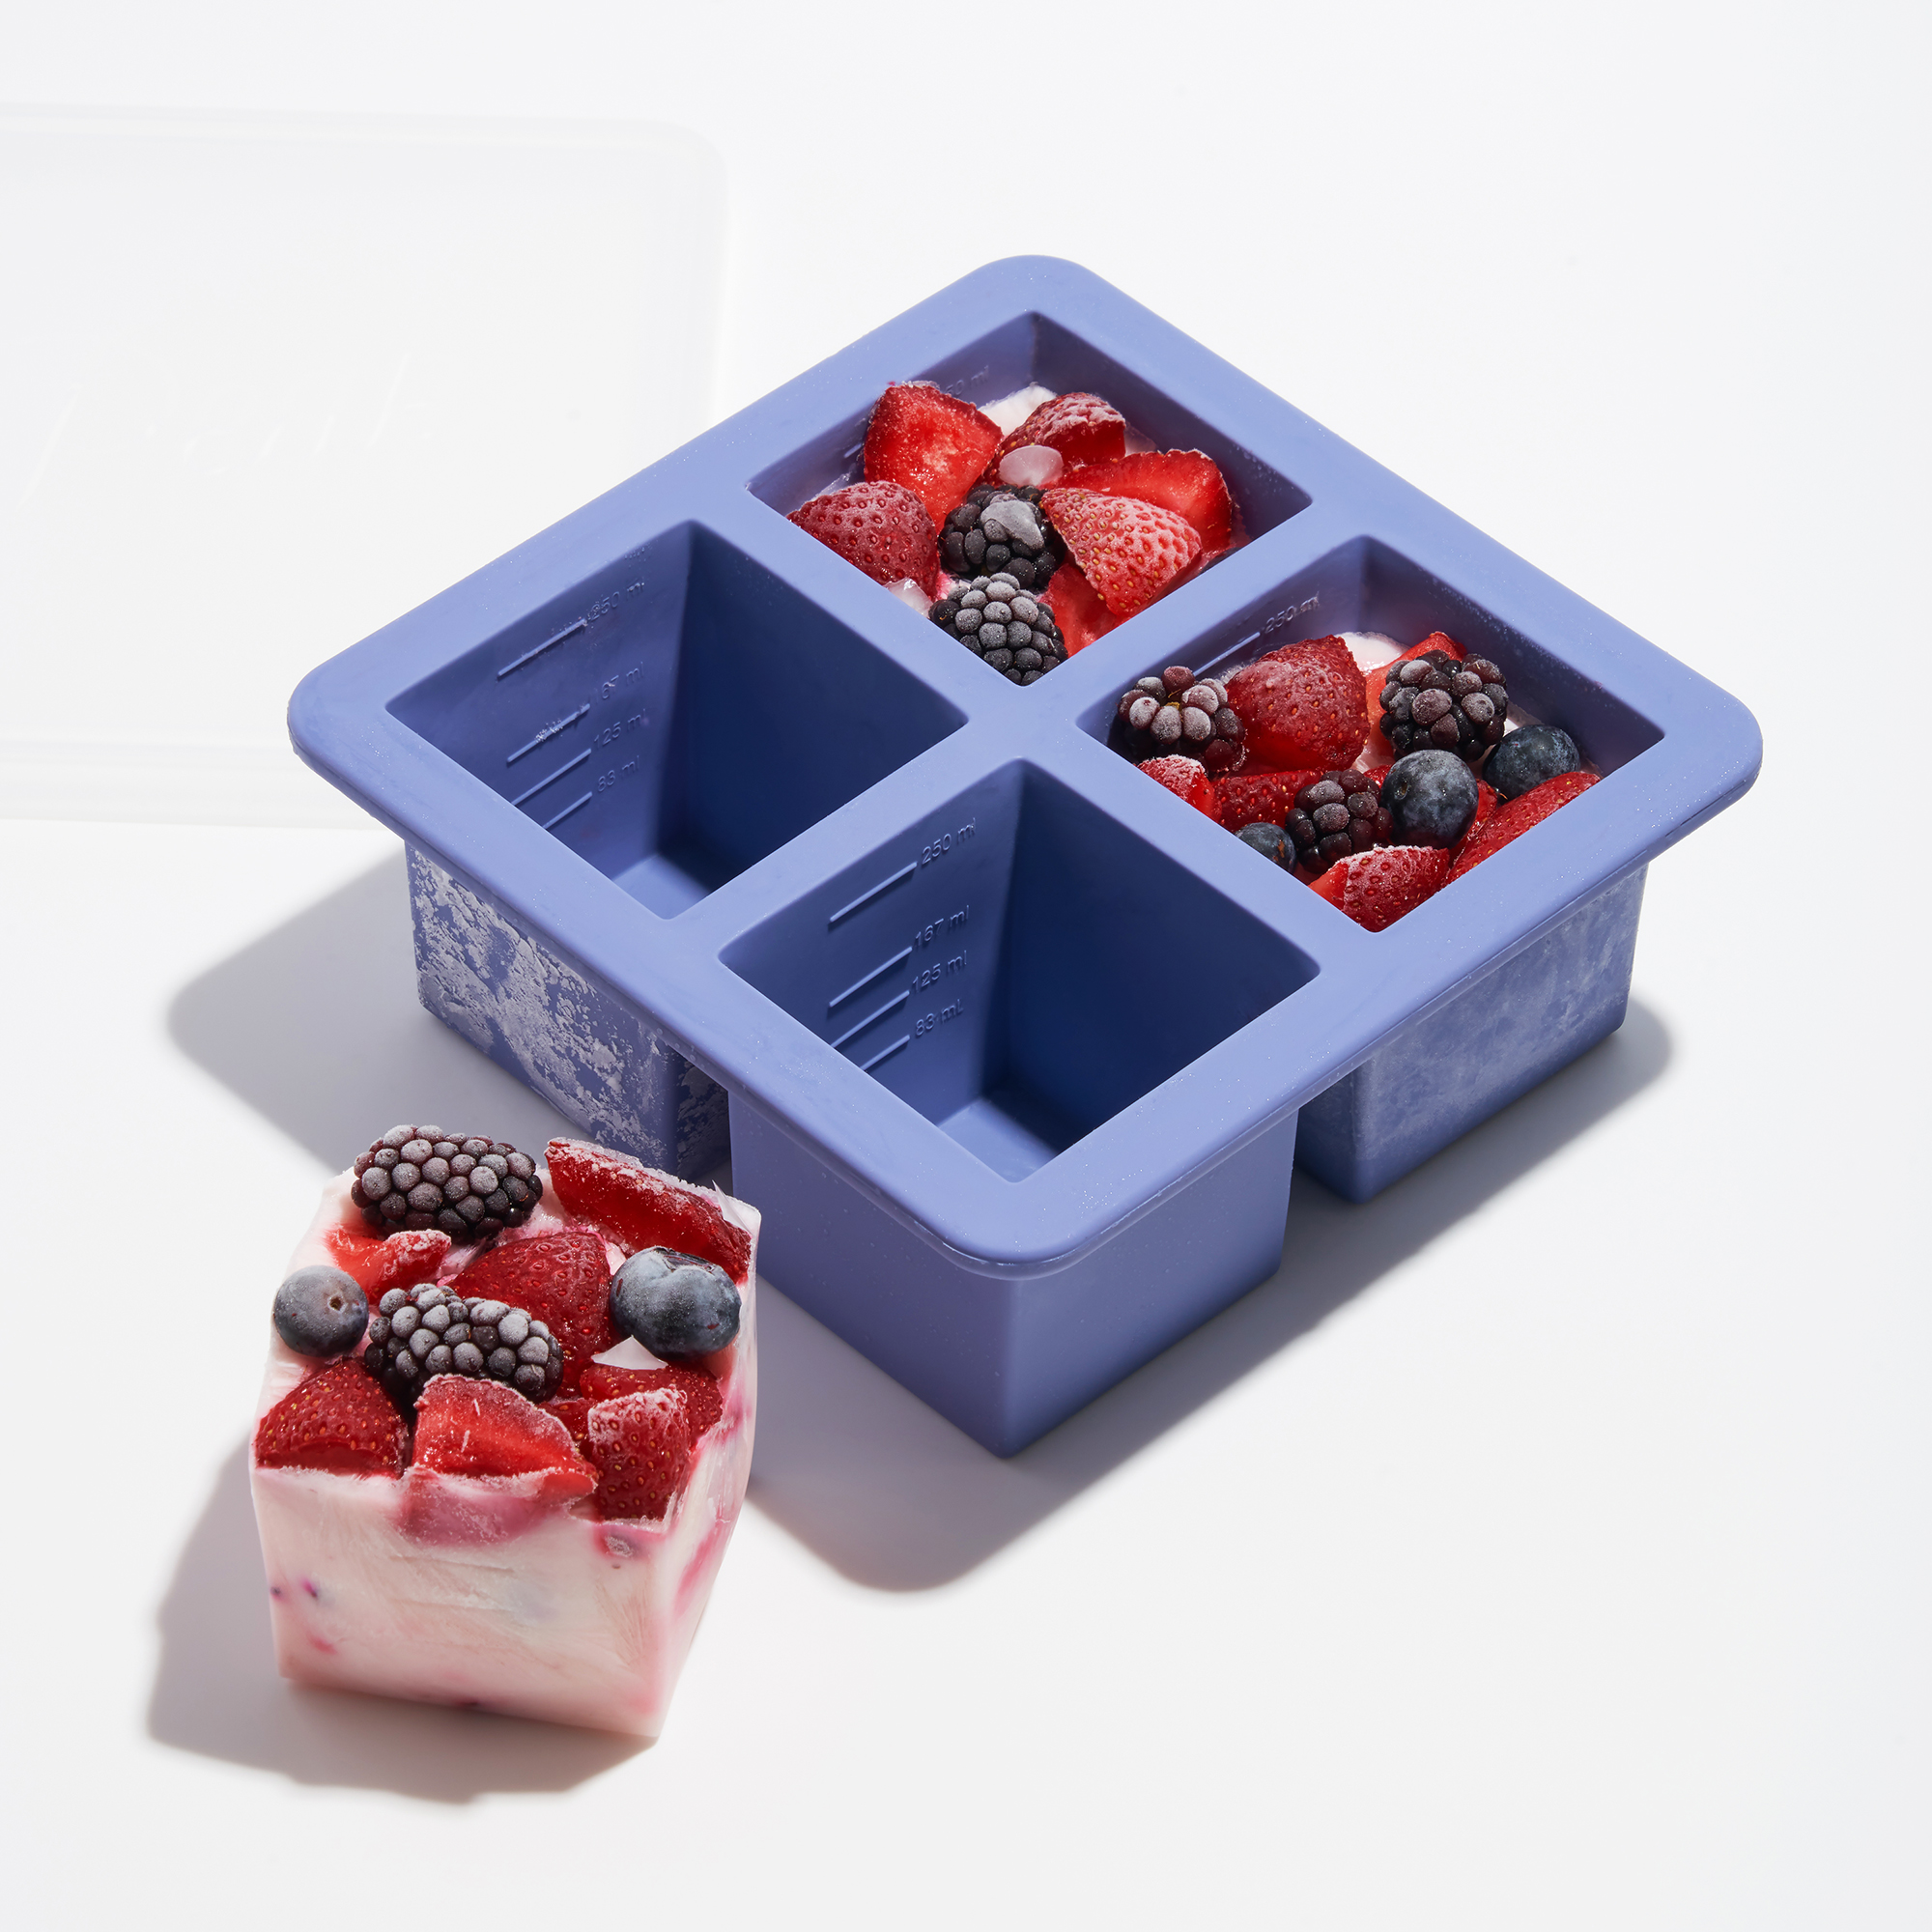 Cup Cubes Freezer Tray - 4 Cubes